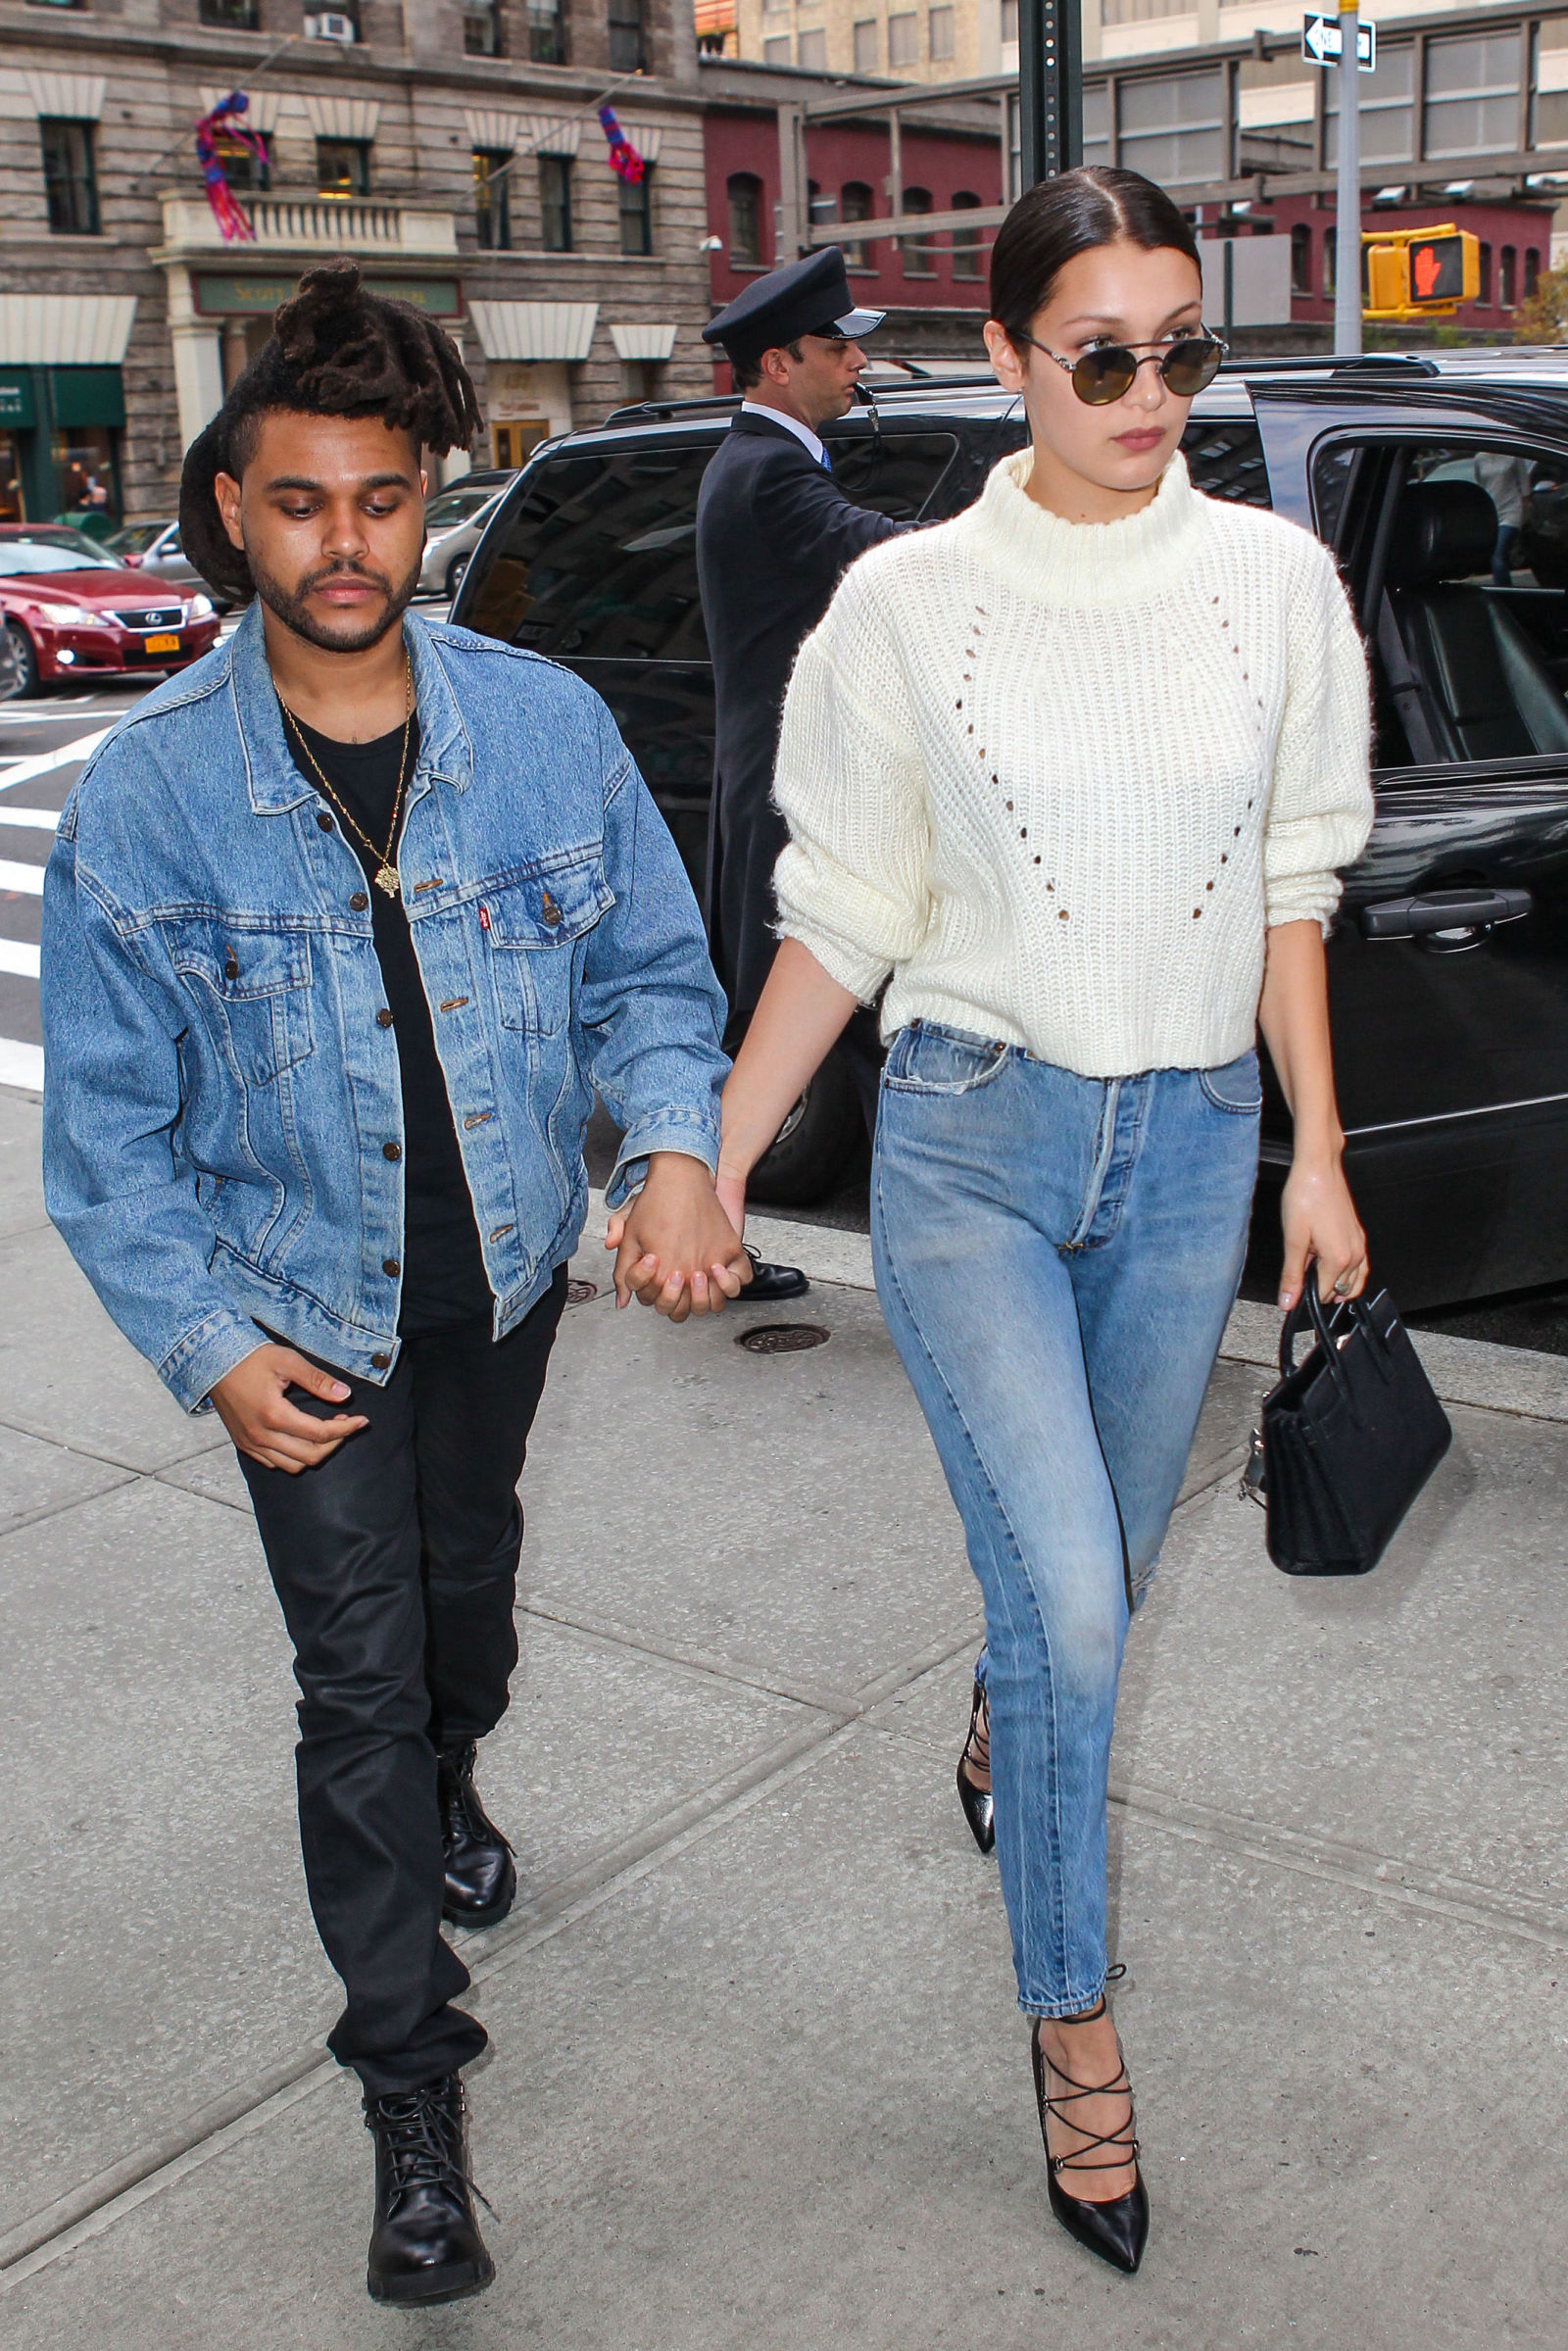 The Weeknd Bella Hadid And New York Fashion On Pinterest